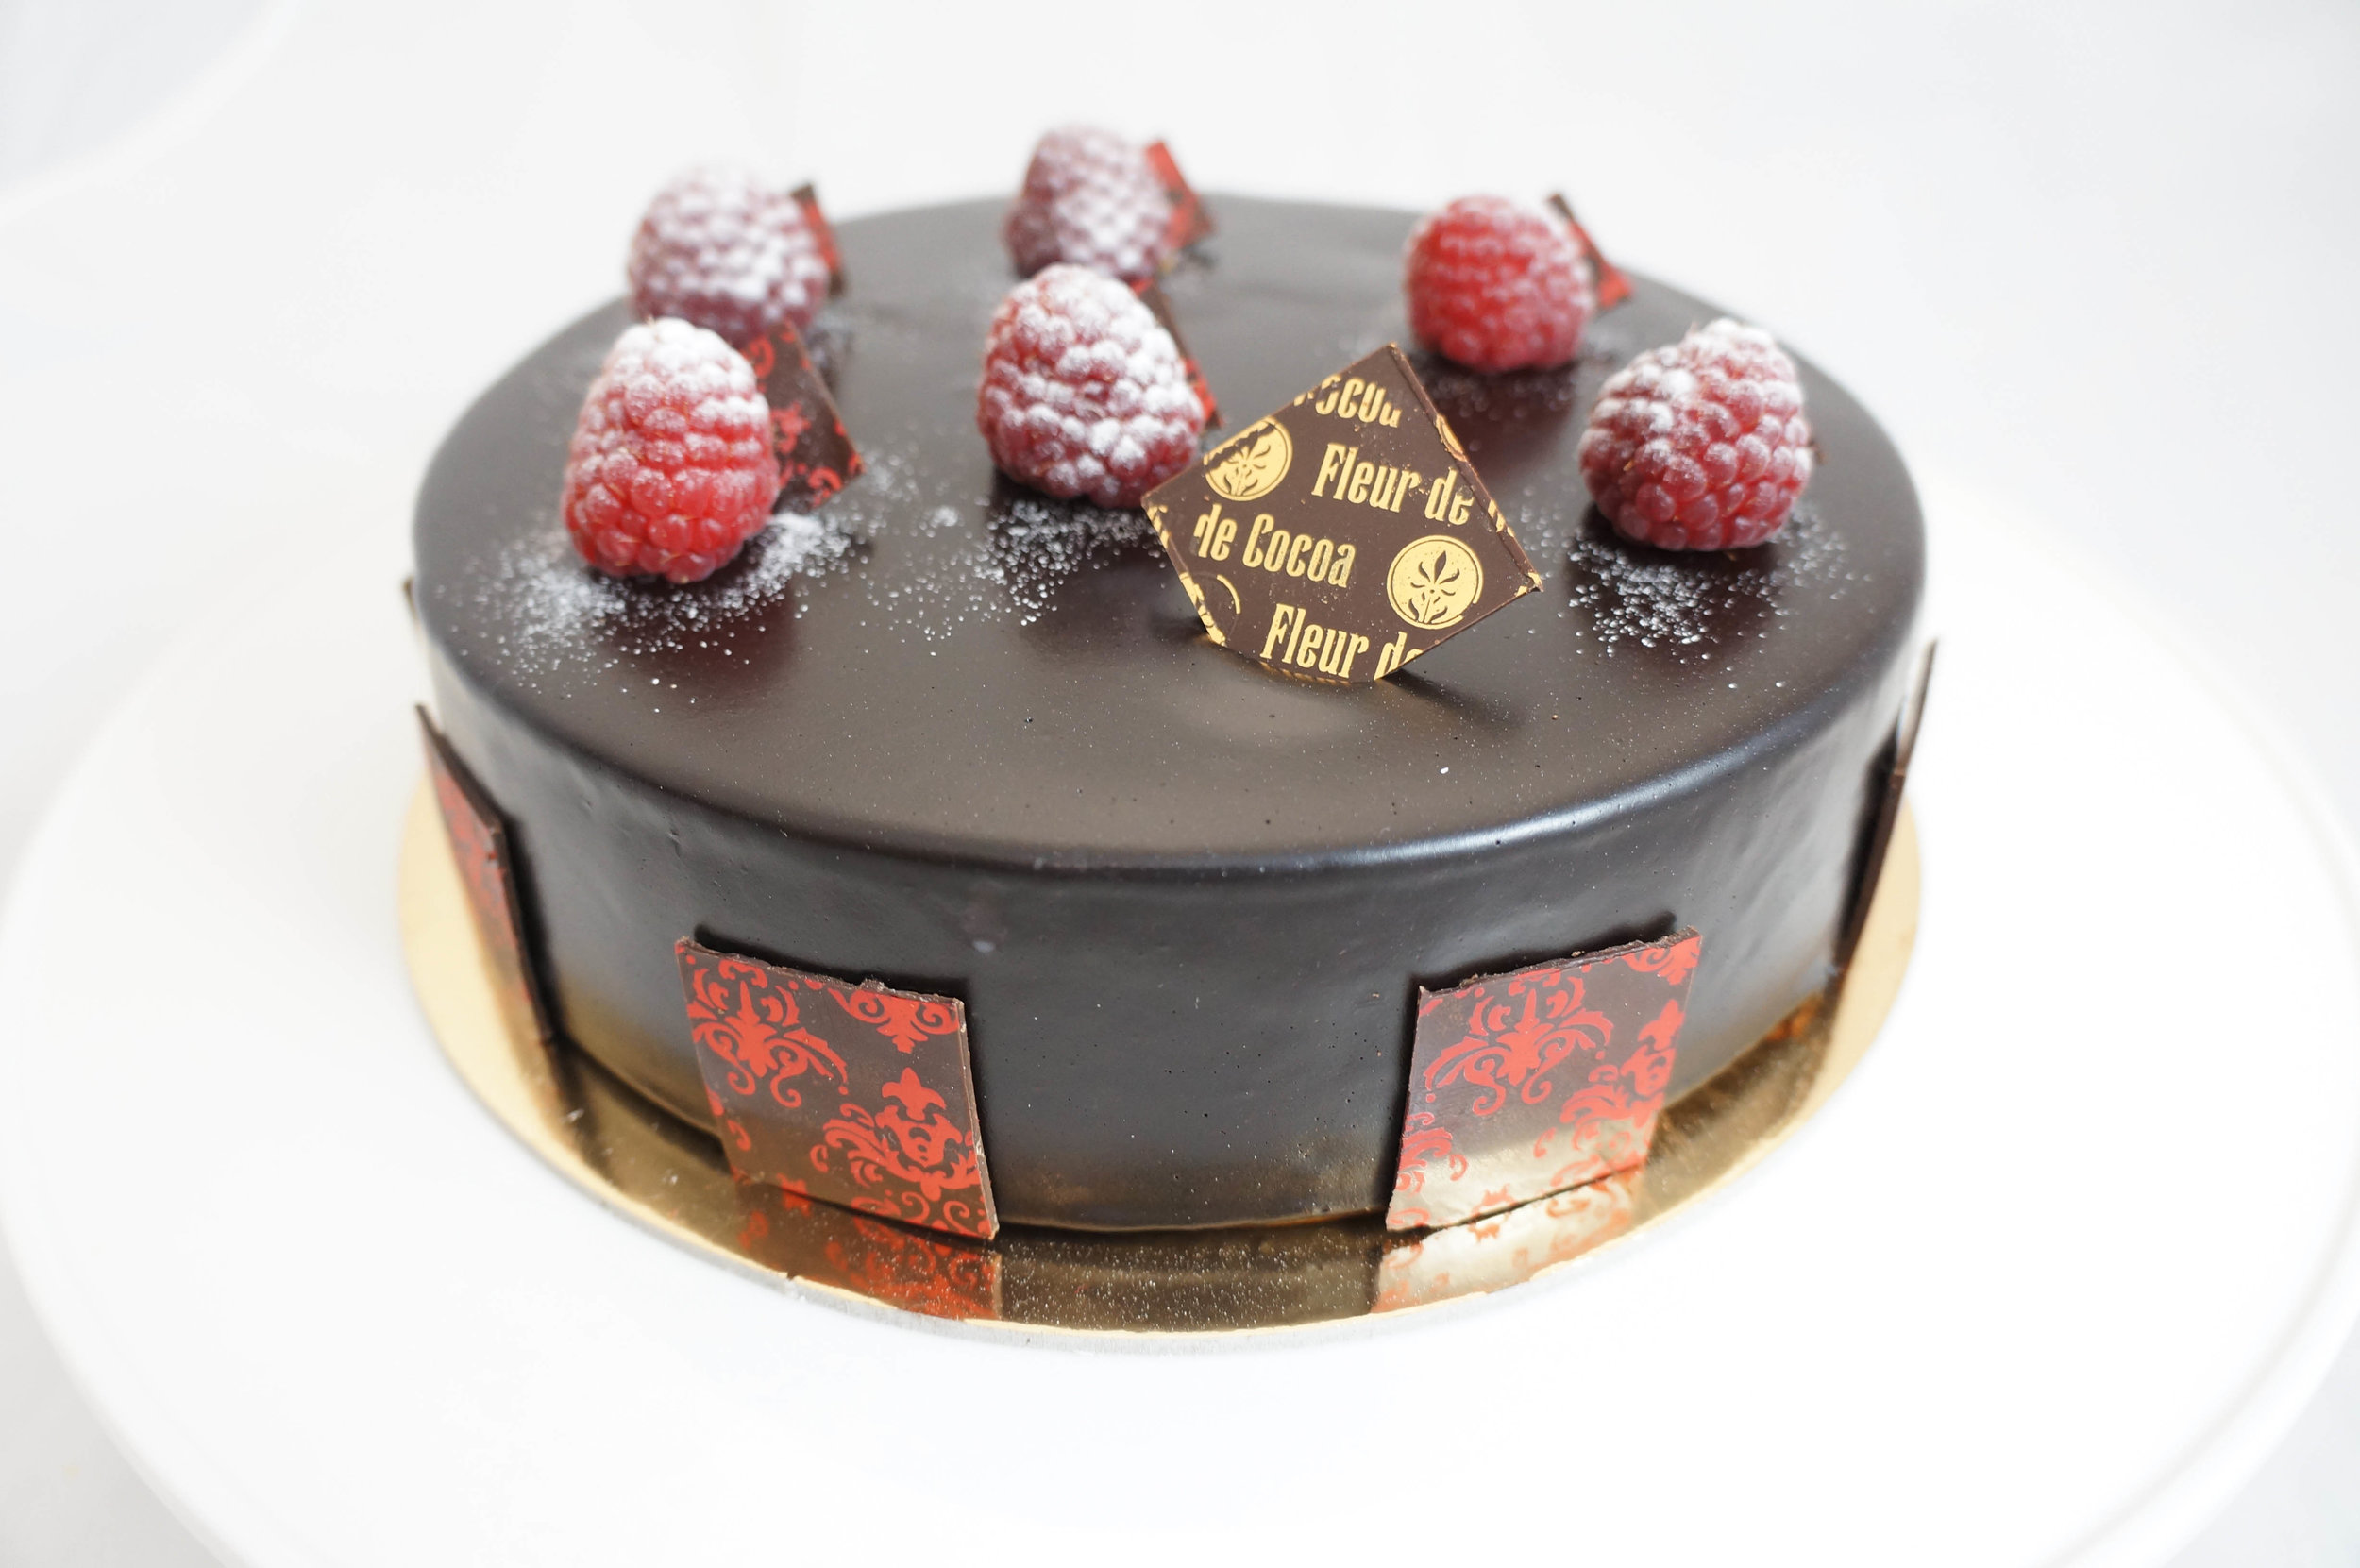 Red and Black   Dark chocolate raspberry mousse with raspberry coulis and chocolate sponge cake. Gluten-free.